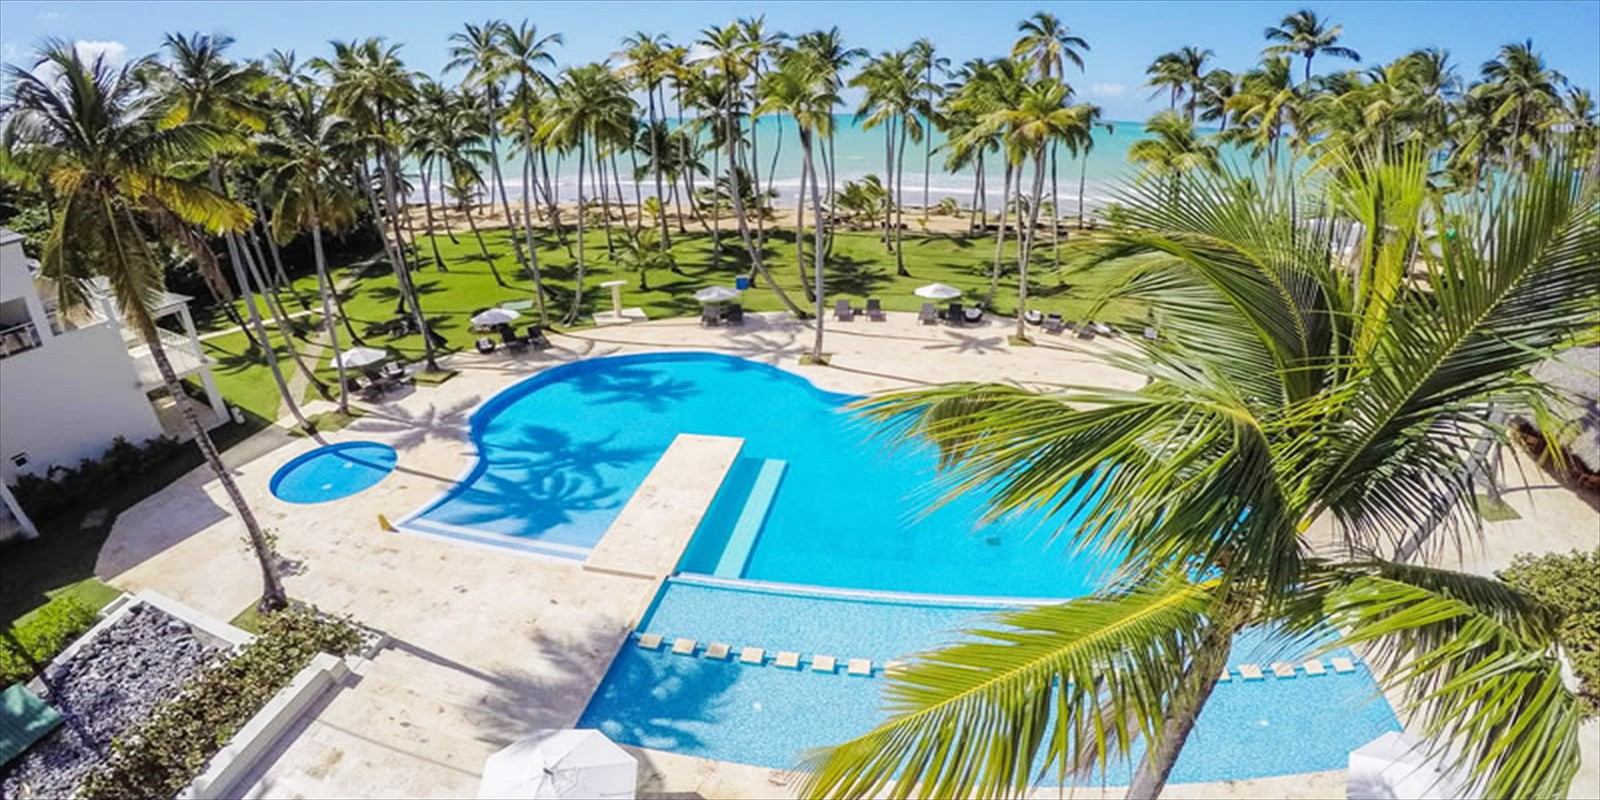 Real Estate for Sale or Rent in Las Terrenas Dominican Republic.